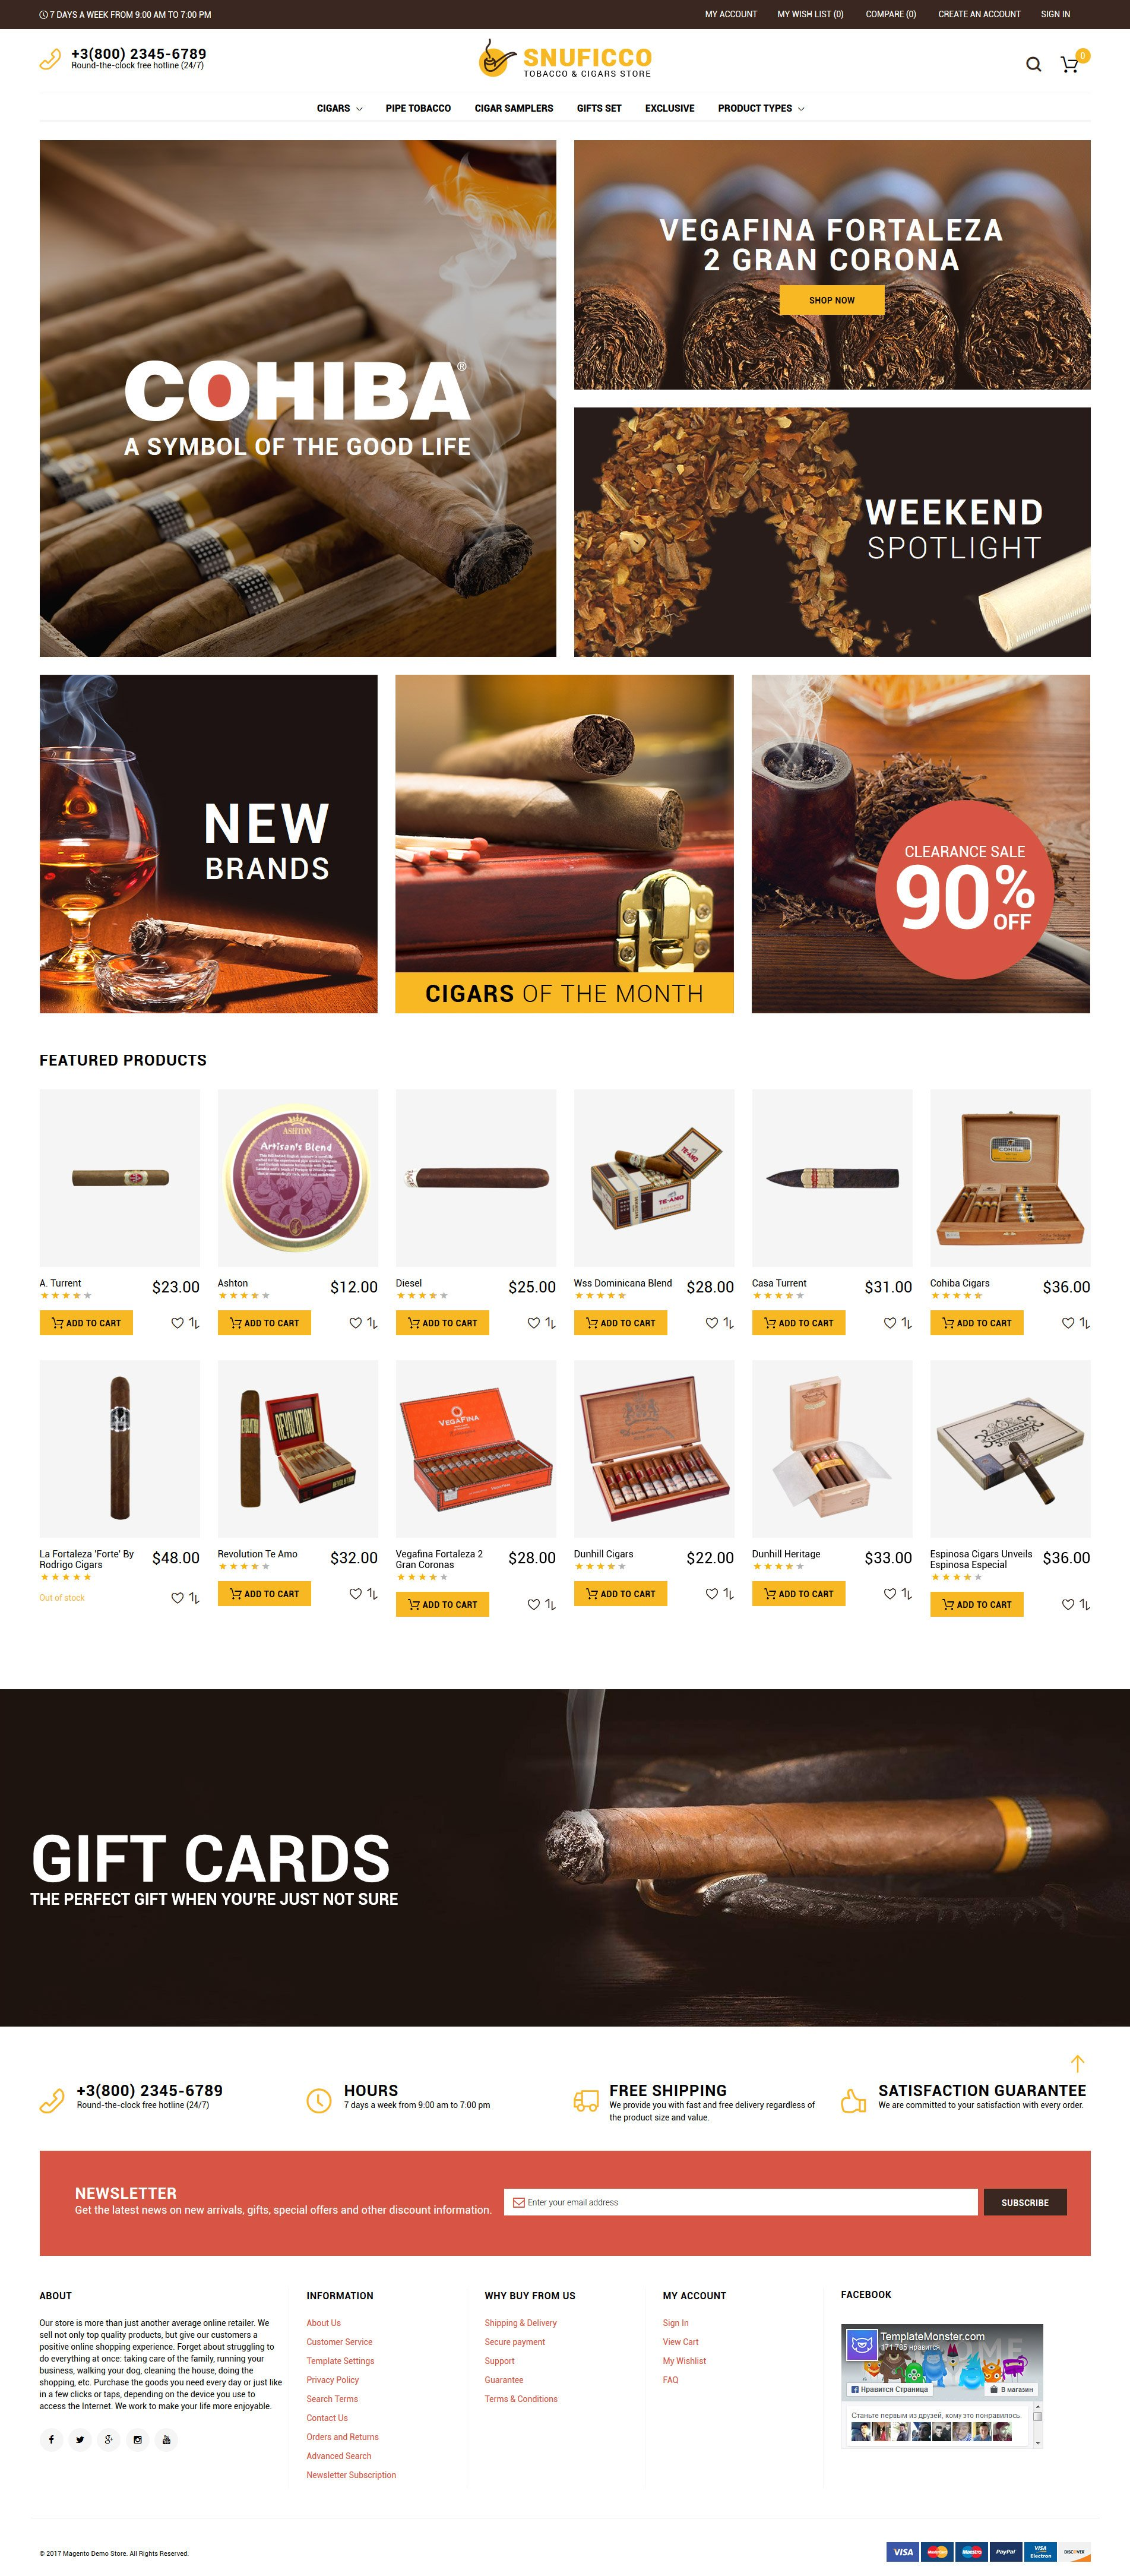 """""""Snuficco - Tobacco & Cigars Store Responsive Magento 2 Theme"""" 响应式Magento模板 #64150"""